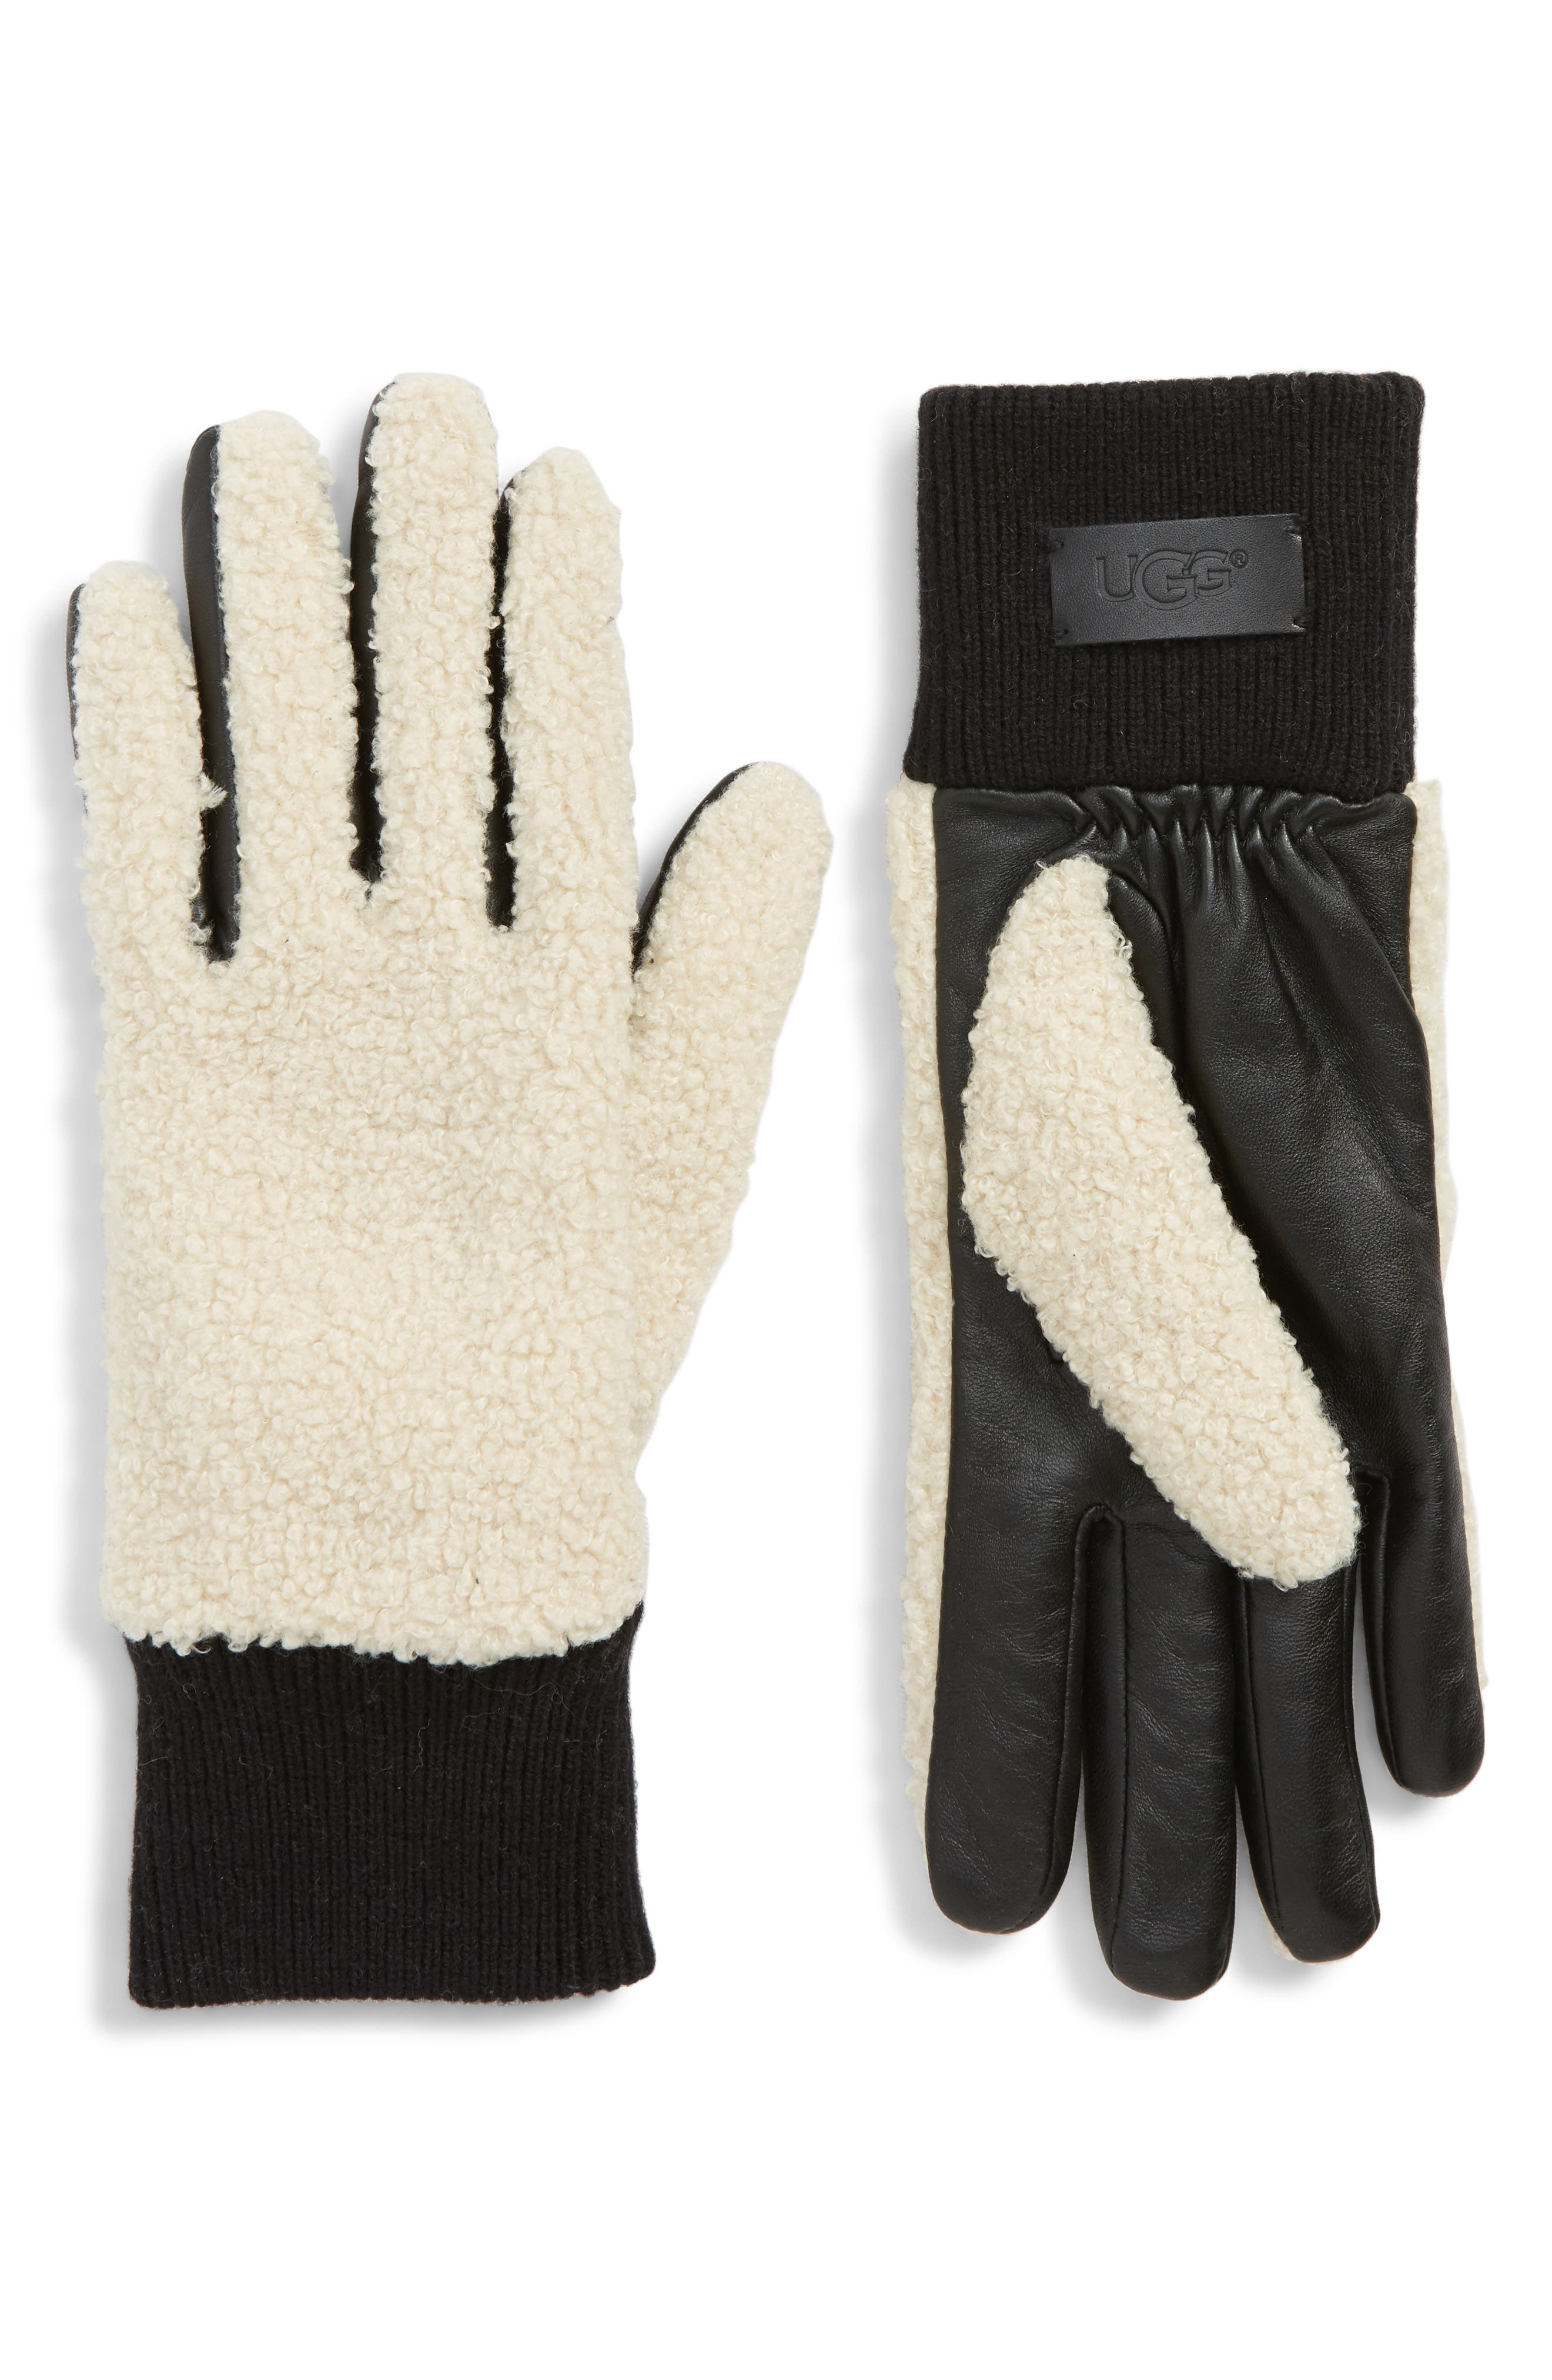 UGG<sup>®</sup> Faux Shearling Touchscreen Compatible Gloves,                         Main,                         color, NATURAL